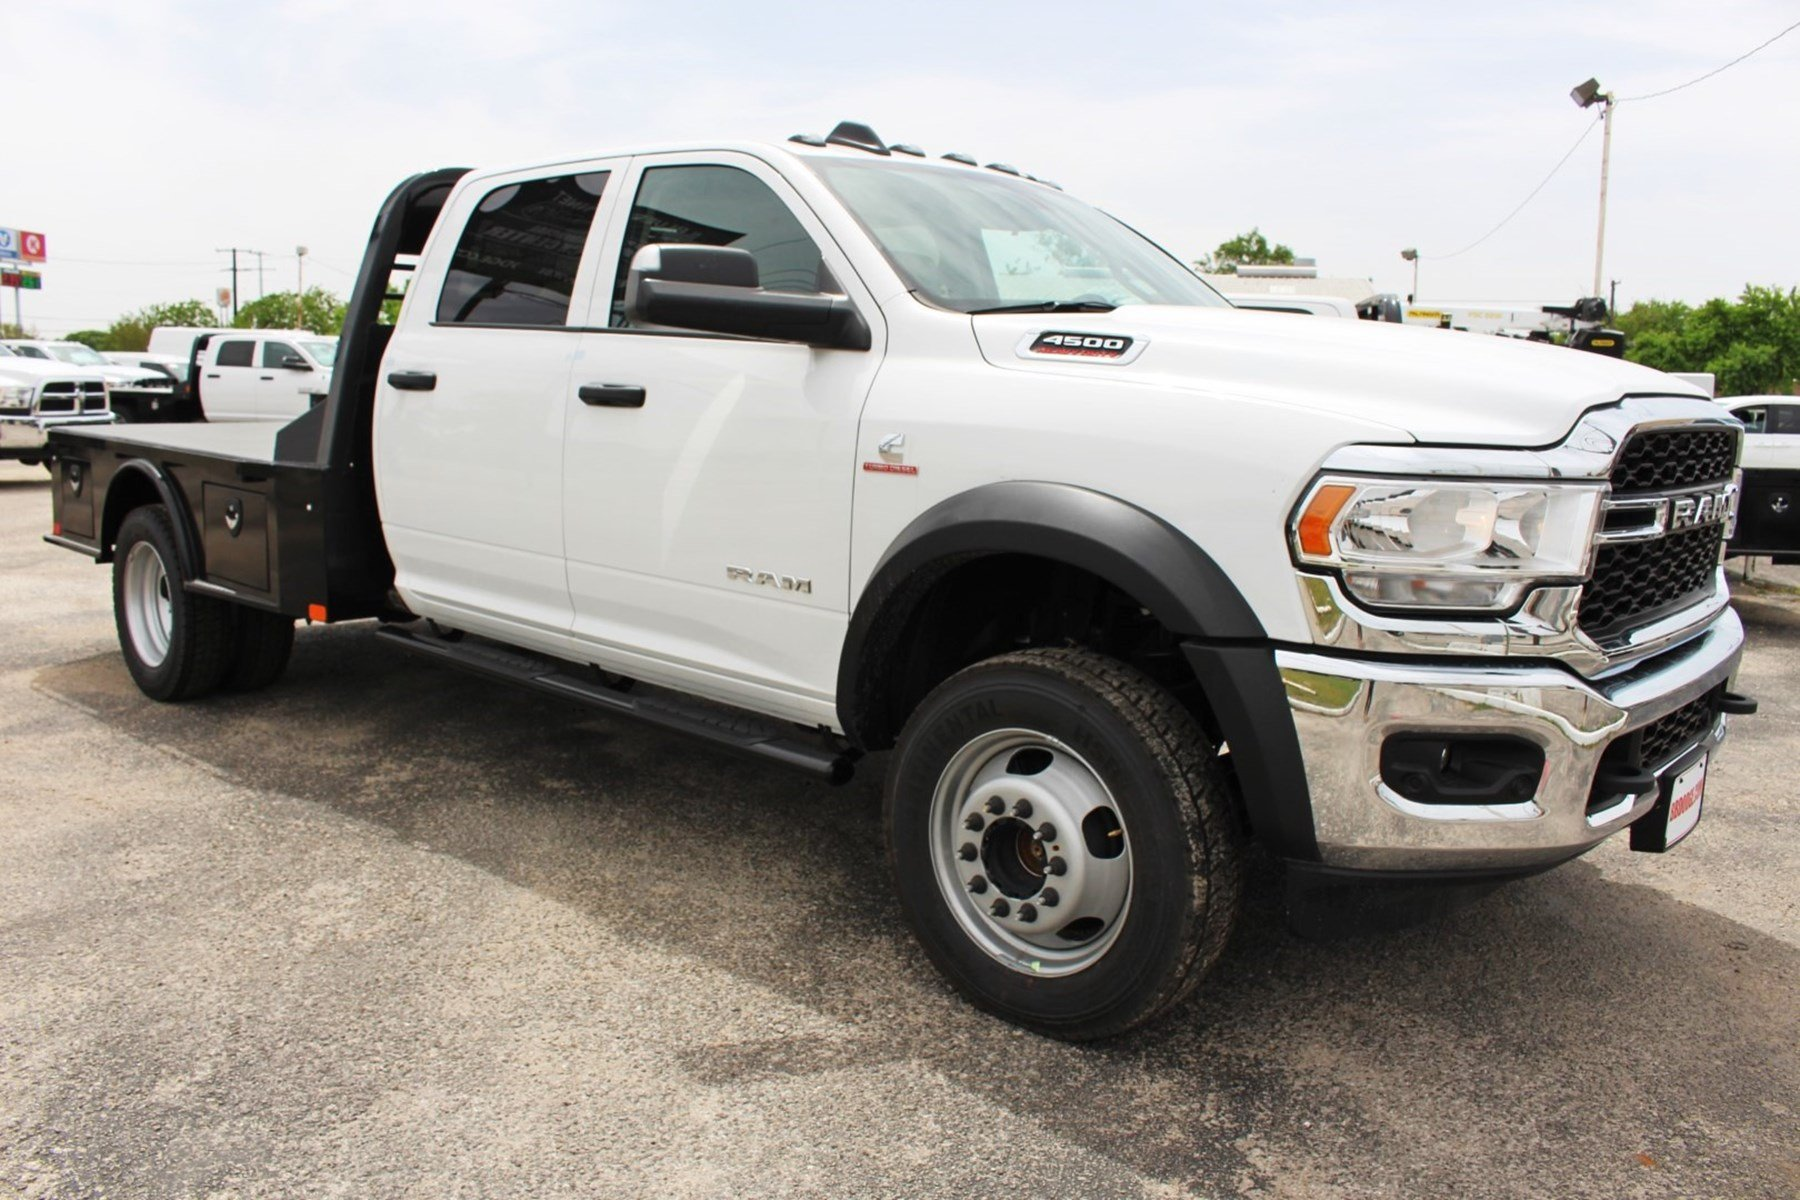 Dodge Ram Truck Bed For Sale >> New 2019 Ram 4500 Flatbed For Sale In New Braunfels Tx Tg522247